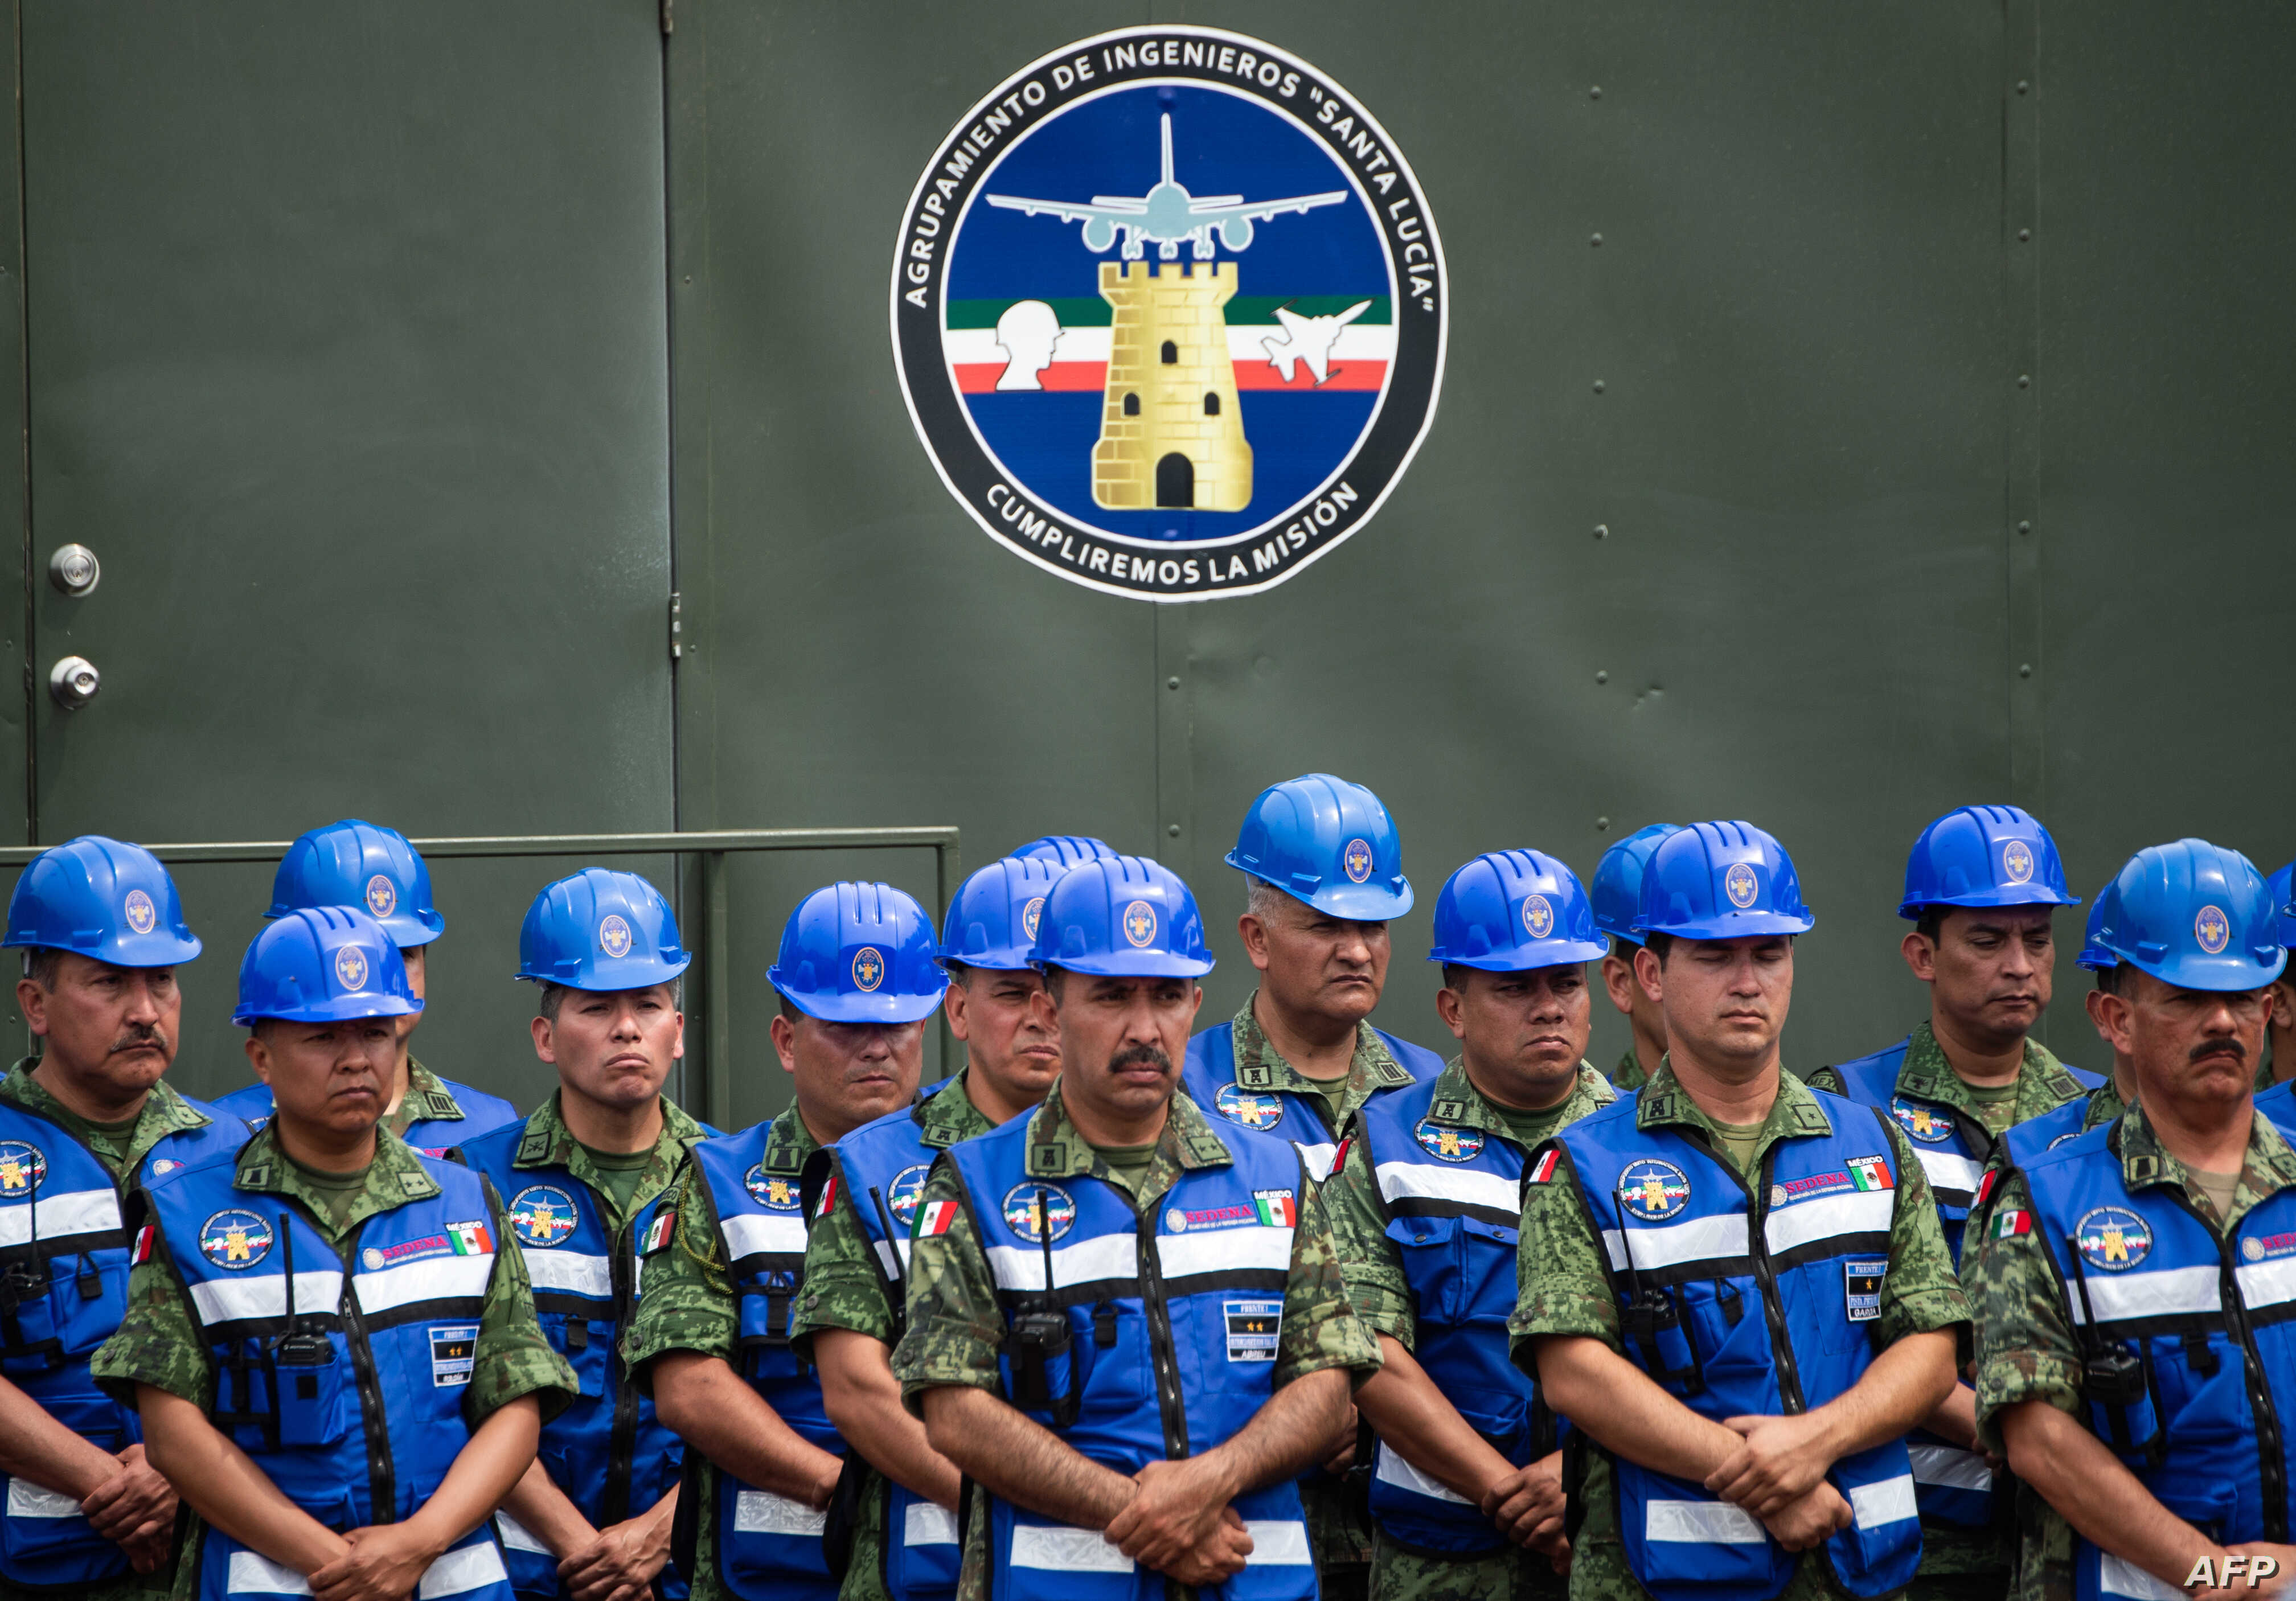 Military engineers are seen during the official event to mark the beginning of the construction of a new international airport, at the Santa Lucia Air Force Base in Zumpango near Mexico City, April 29, 2019.